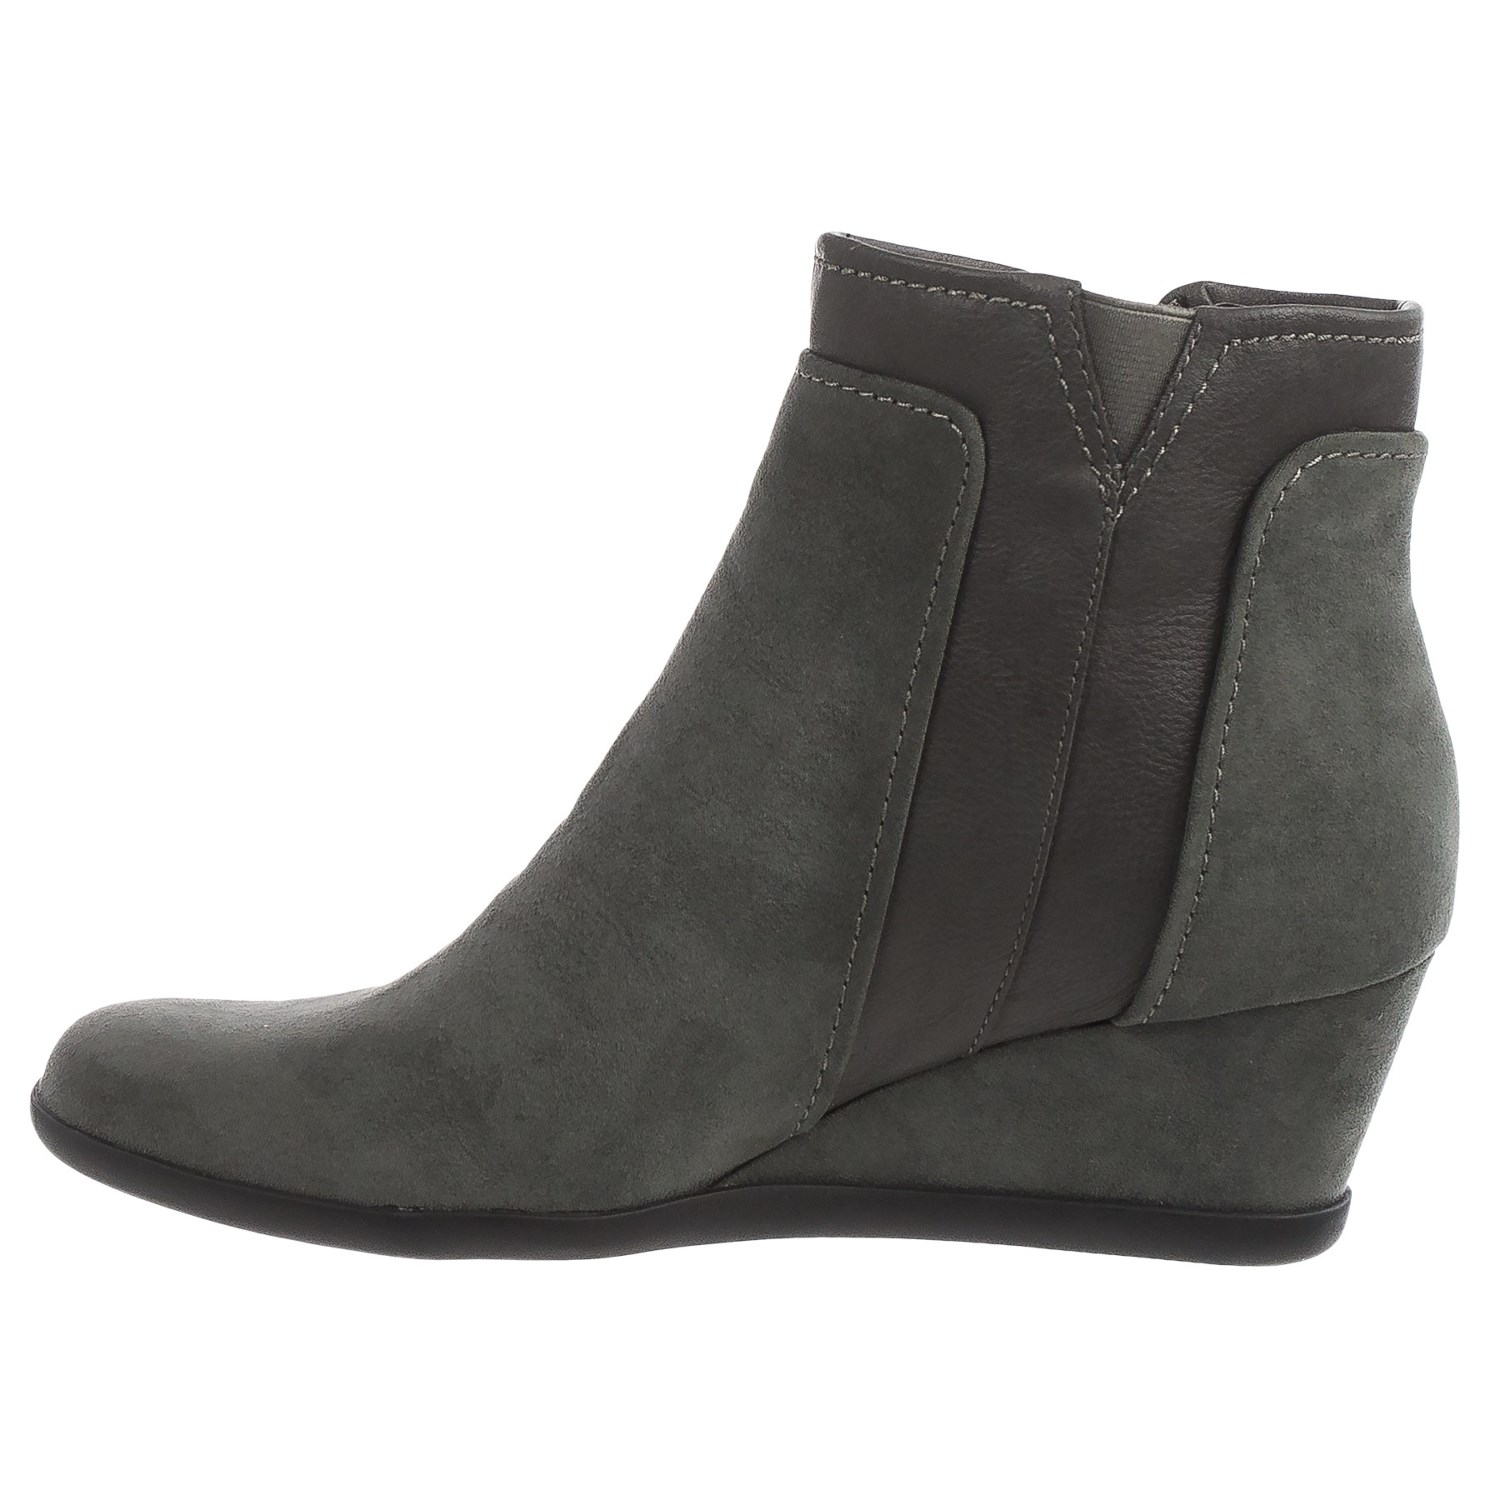 Aerosoles Outfit Boots (For Women) - Save 39%